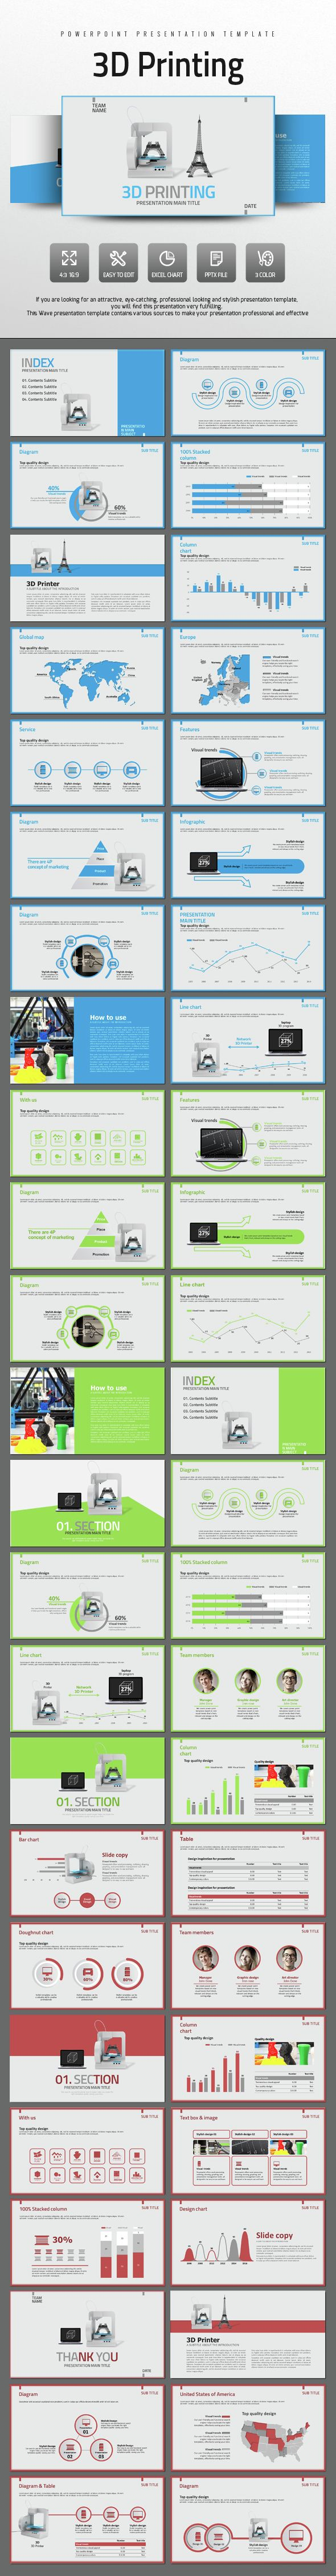 Orientation powerpoint presentation template